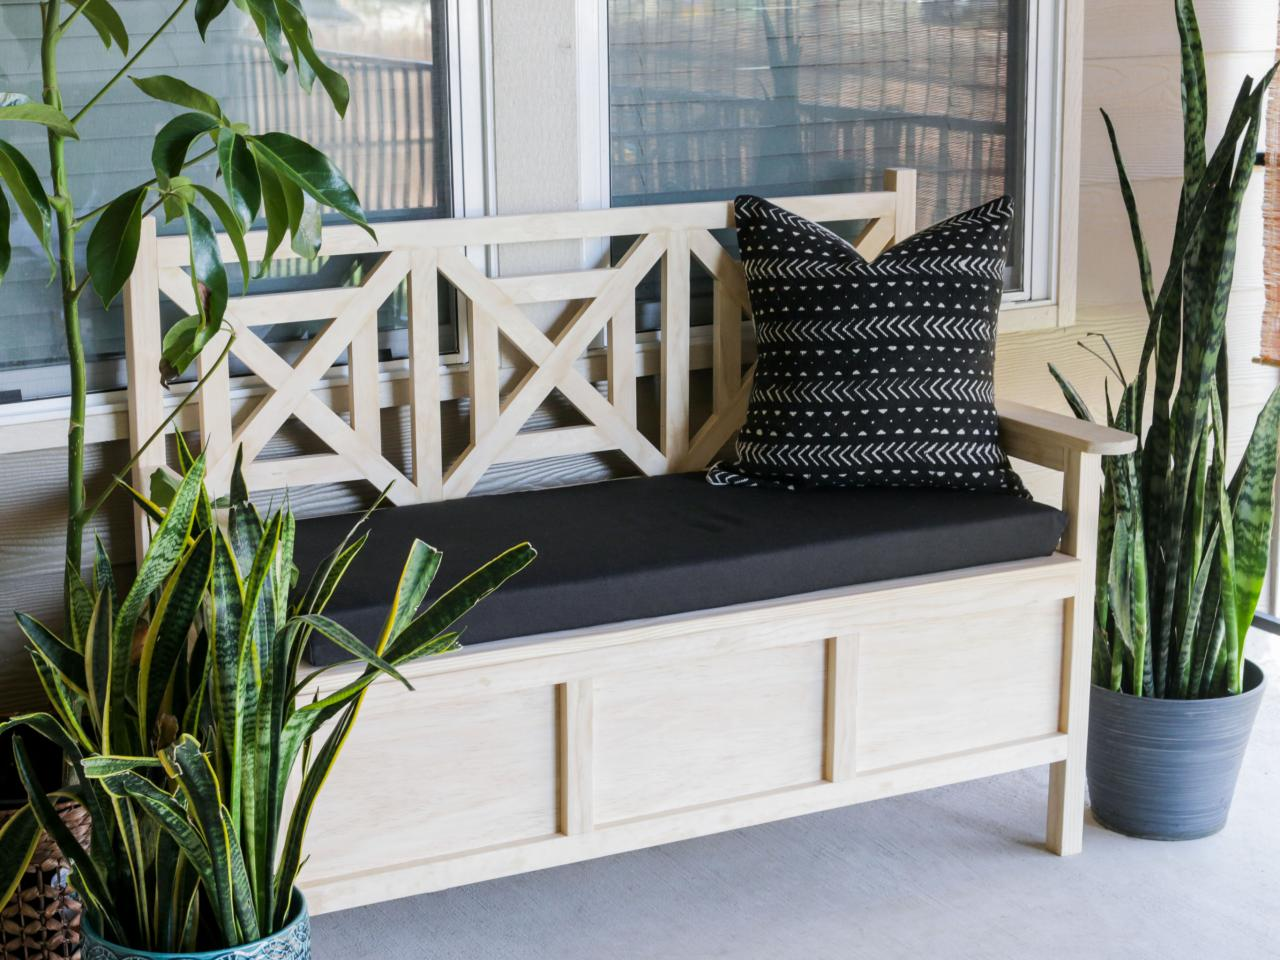 Store extra throw pillows or gardening tools there! Source: HGTV